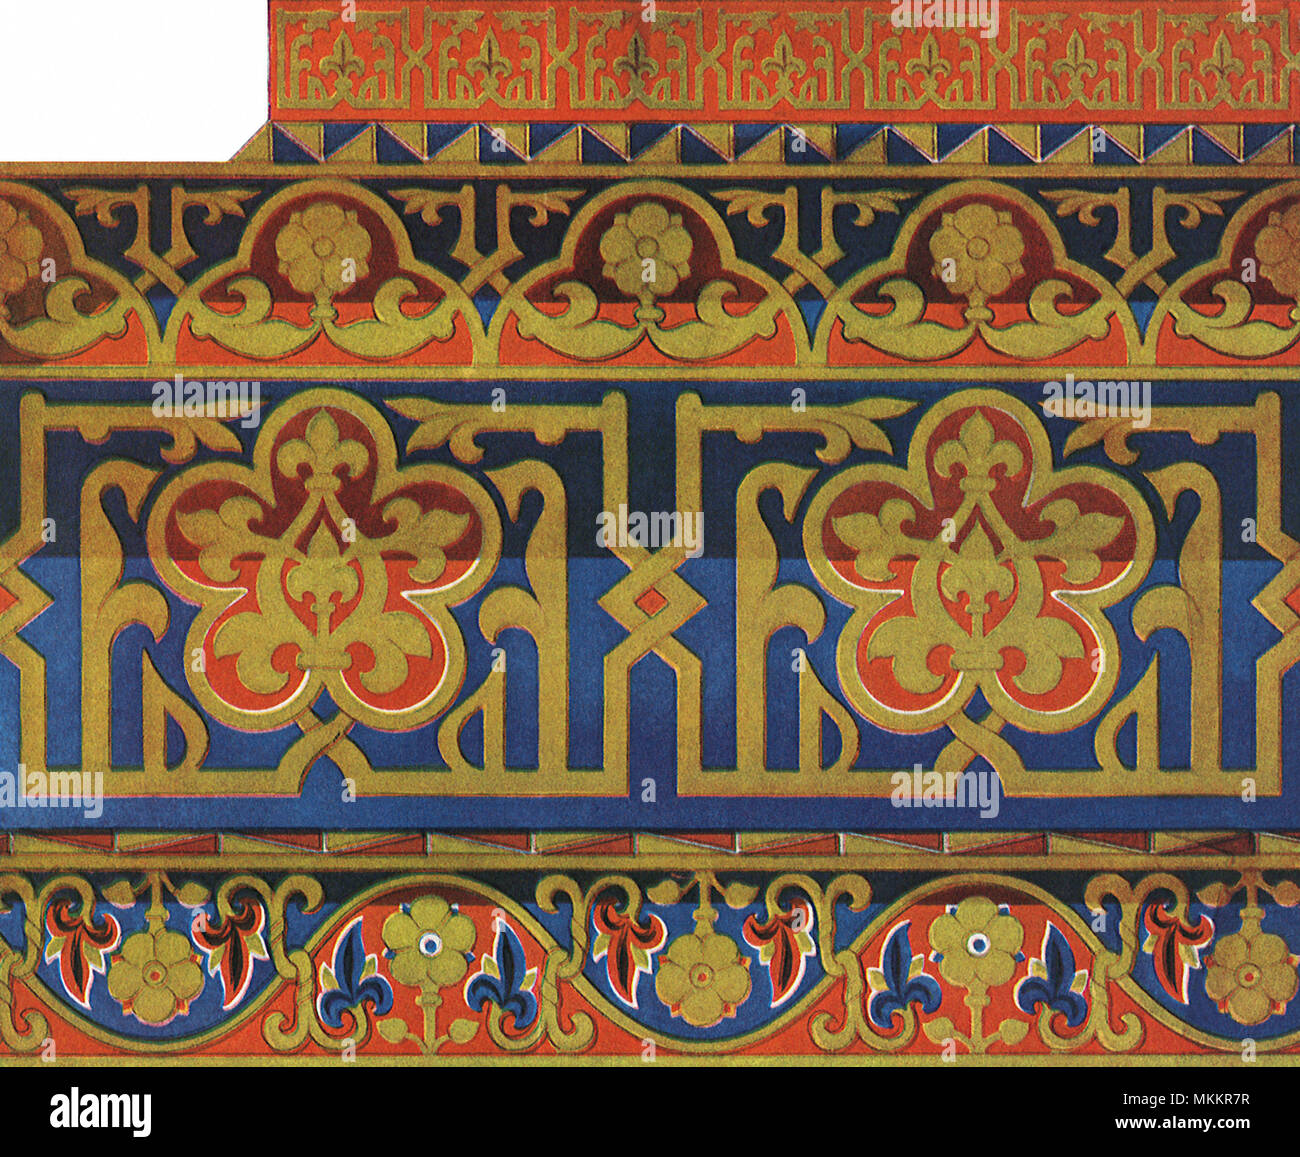 Pattern with Gilt Motifs - Stock Image